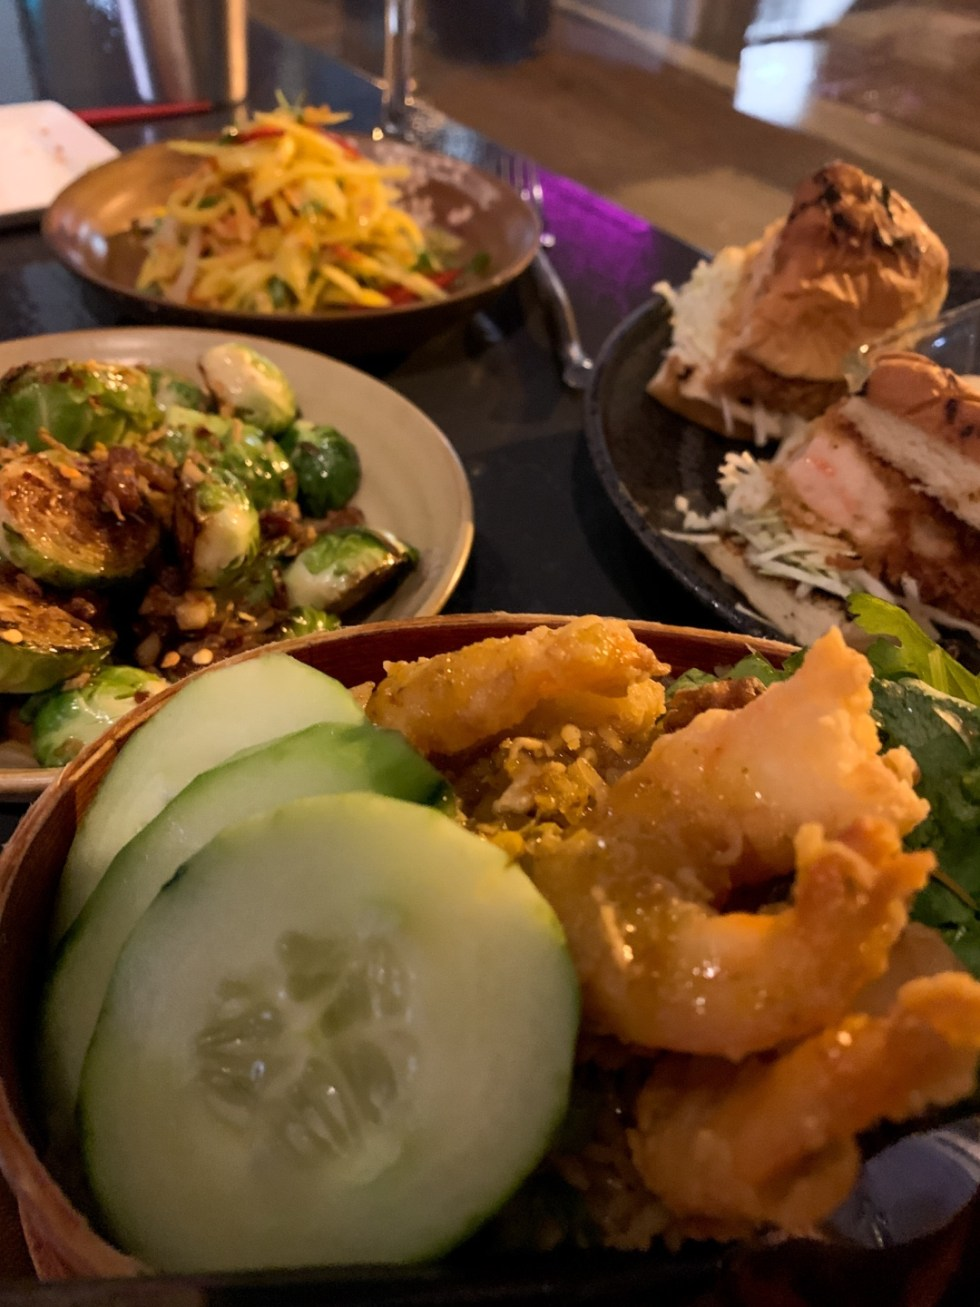 23 Awesome Things To Do in Durham - I'm Fixin' To - @imfixintoblog | Things to do in Durham by popular NC travel blog, I'm Fixin' To: image of a fried shrimp and cucumber salad, glazed Brussel sprouts, and chicken sandwich.